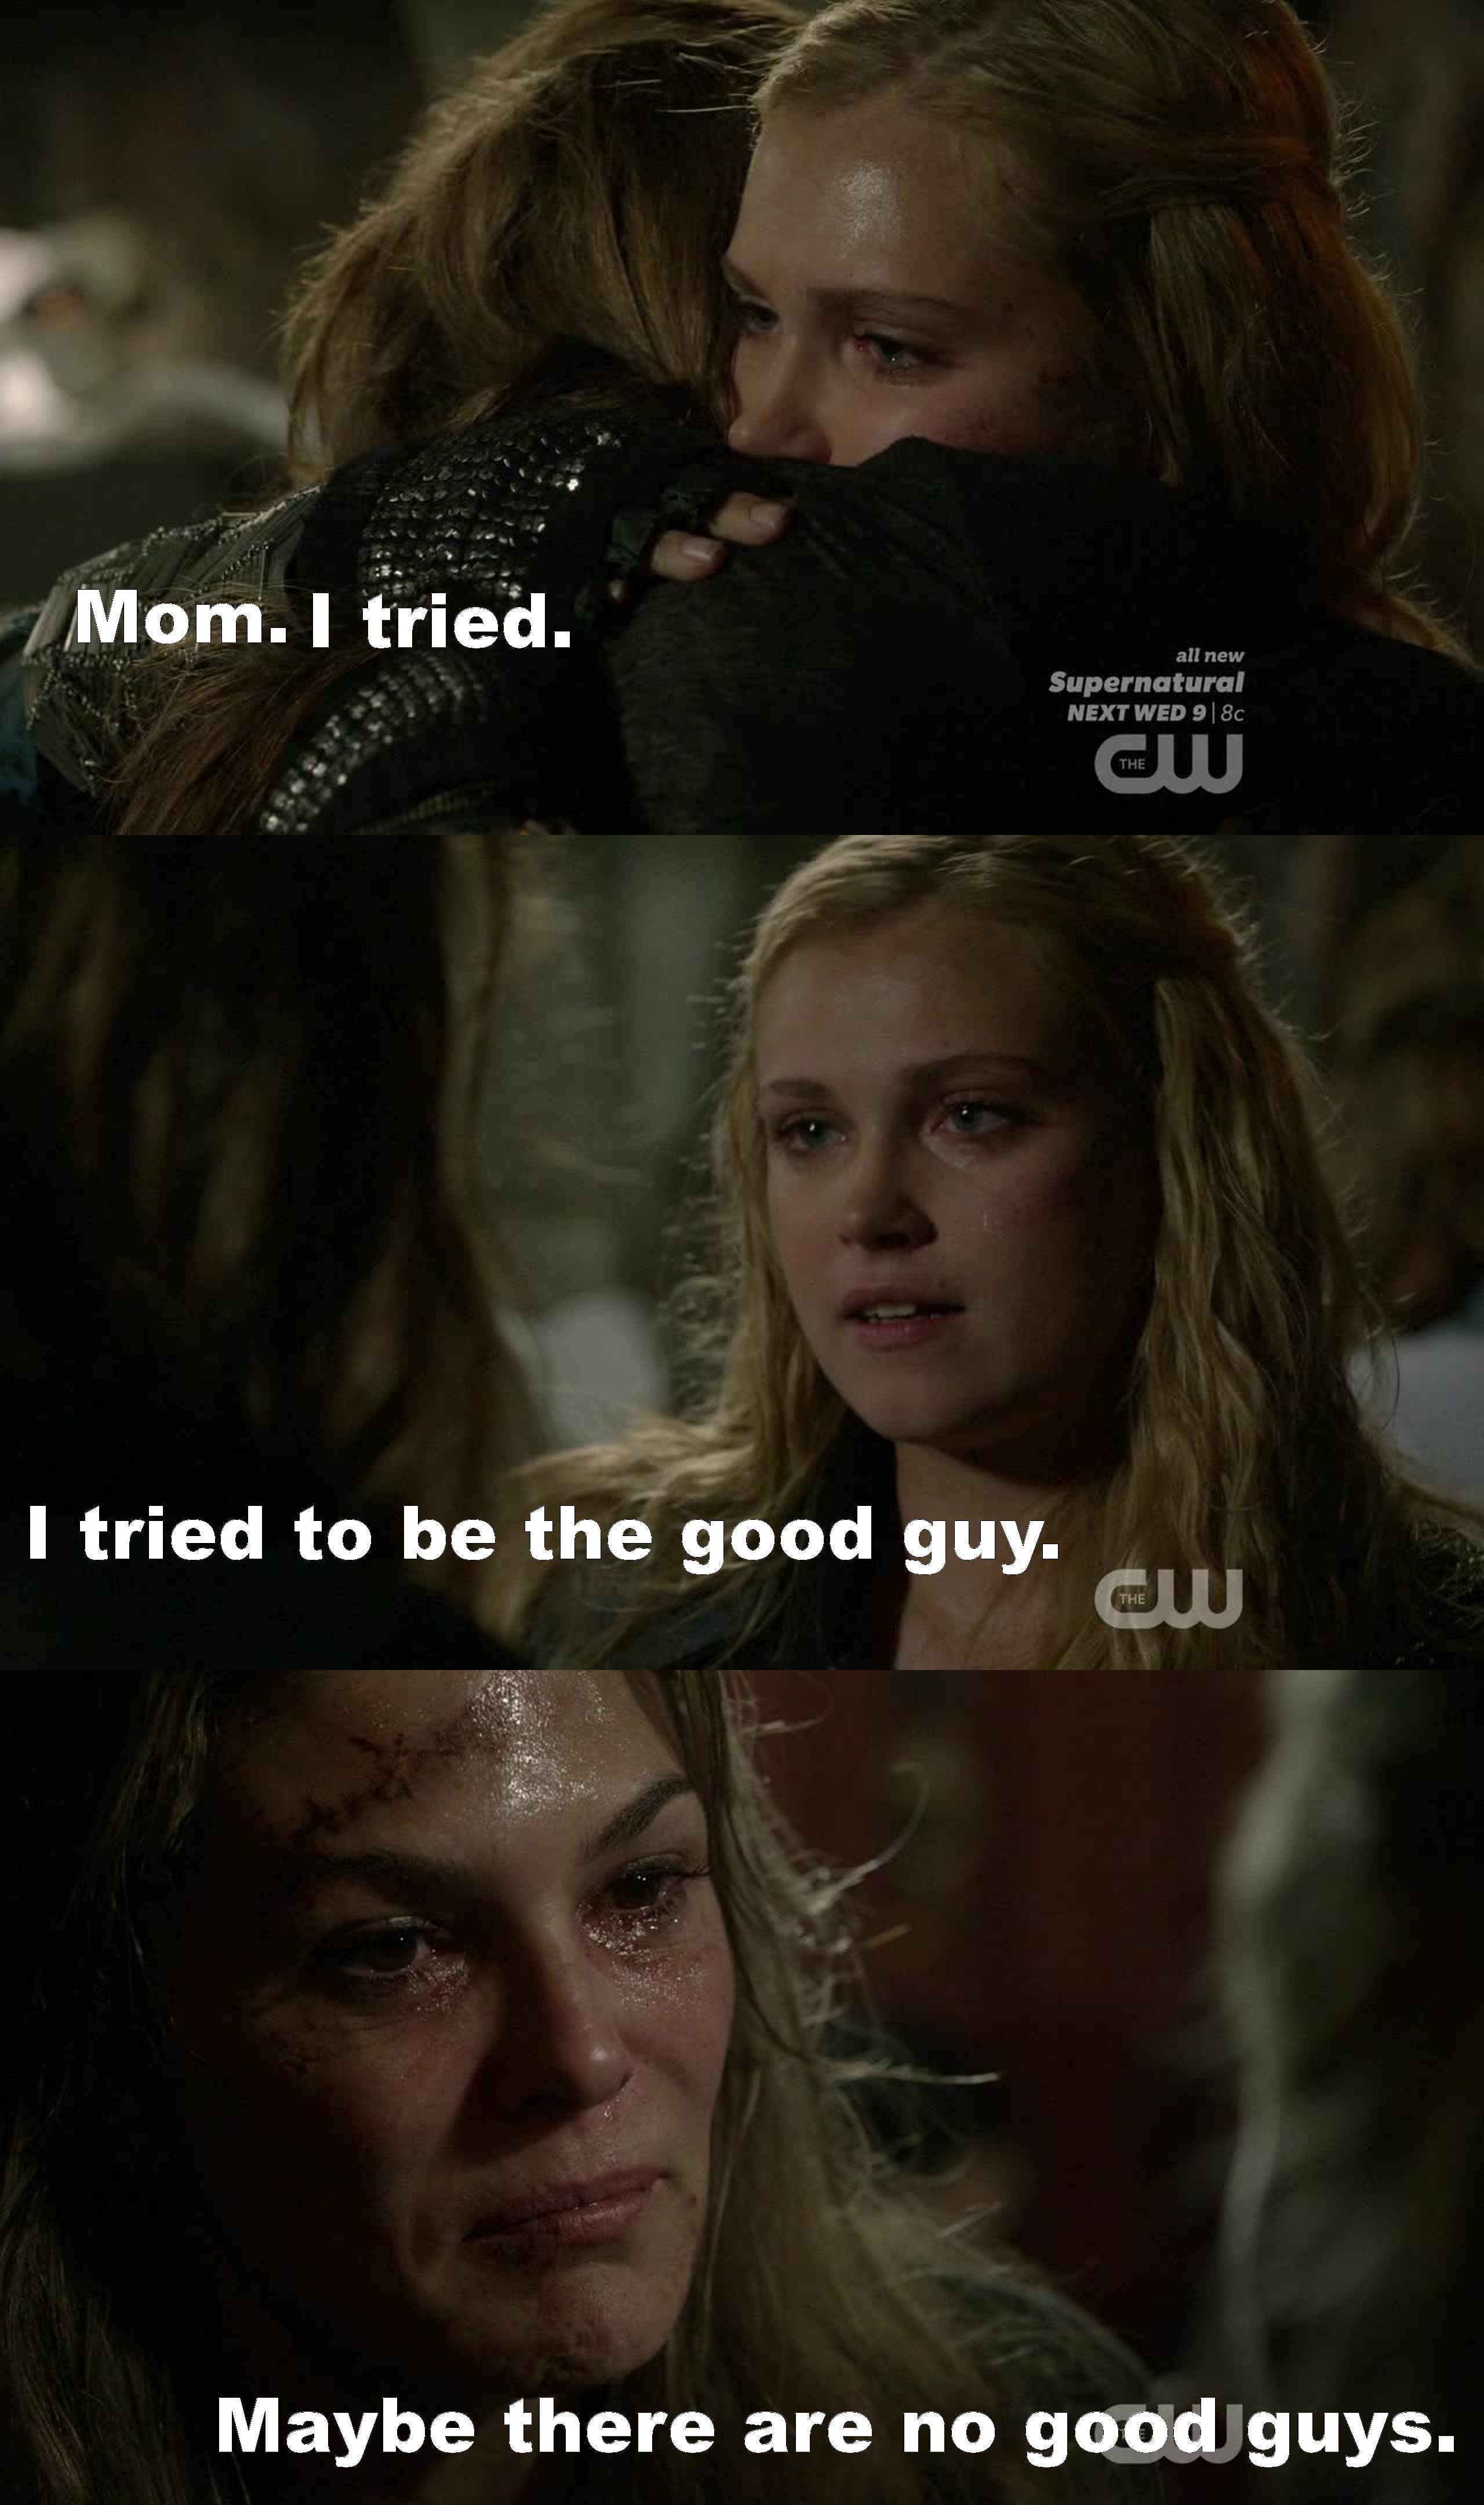 Just Amazing!!! ???????????? THE 100 IS LIFE!